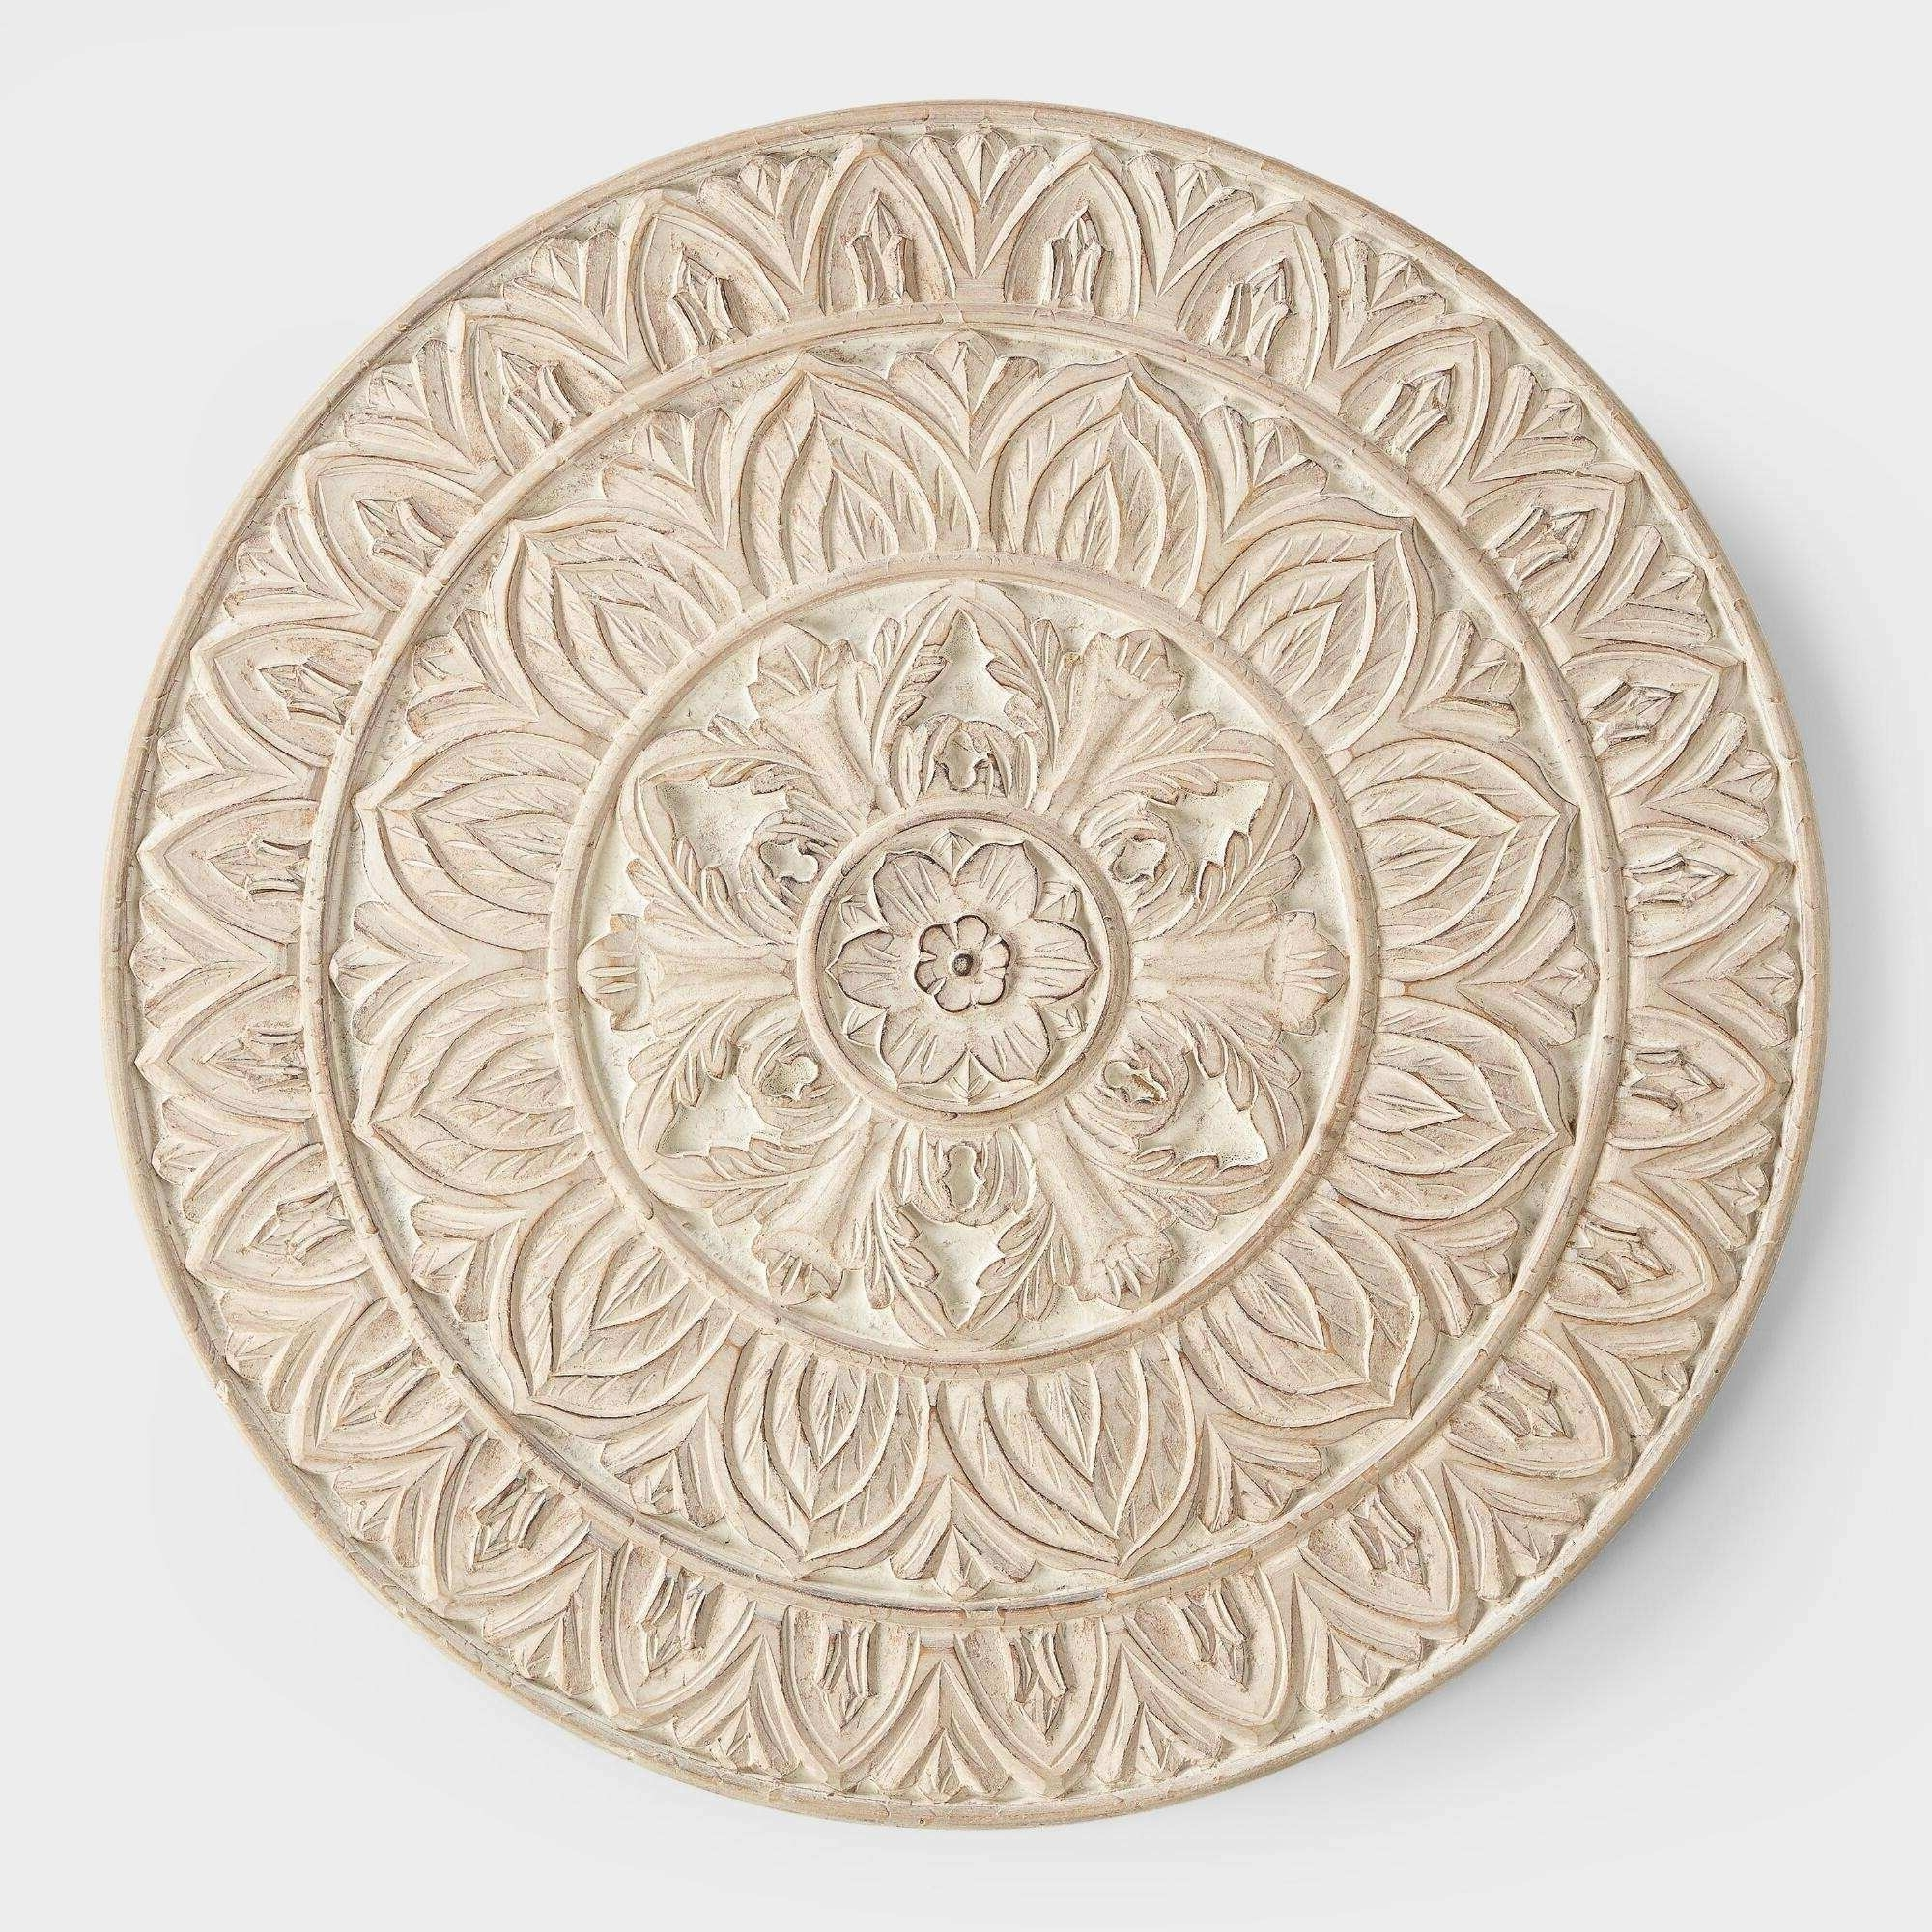 Round Wood Wall Art For Most Up To Date Round Wood Wall Art Best Of Whitewashed Round Wood Shaila Wall Decor (View 9 of 15)